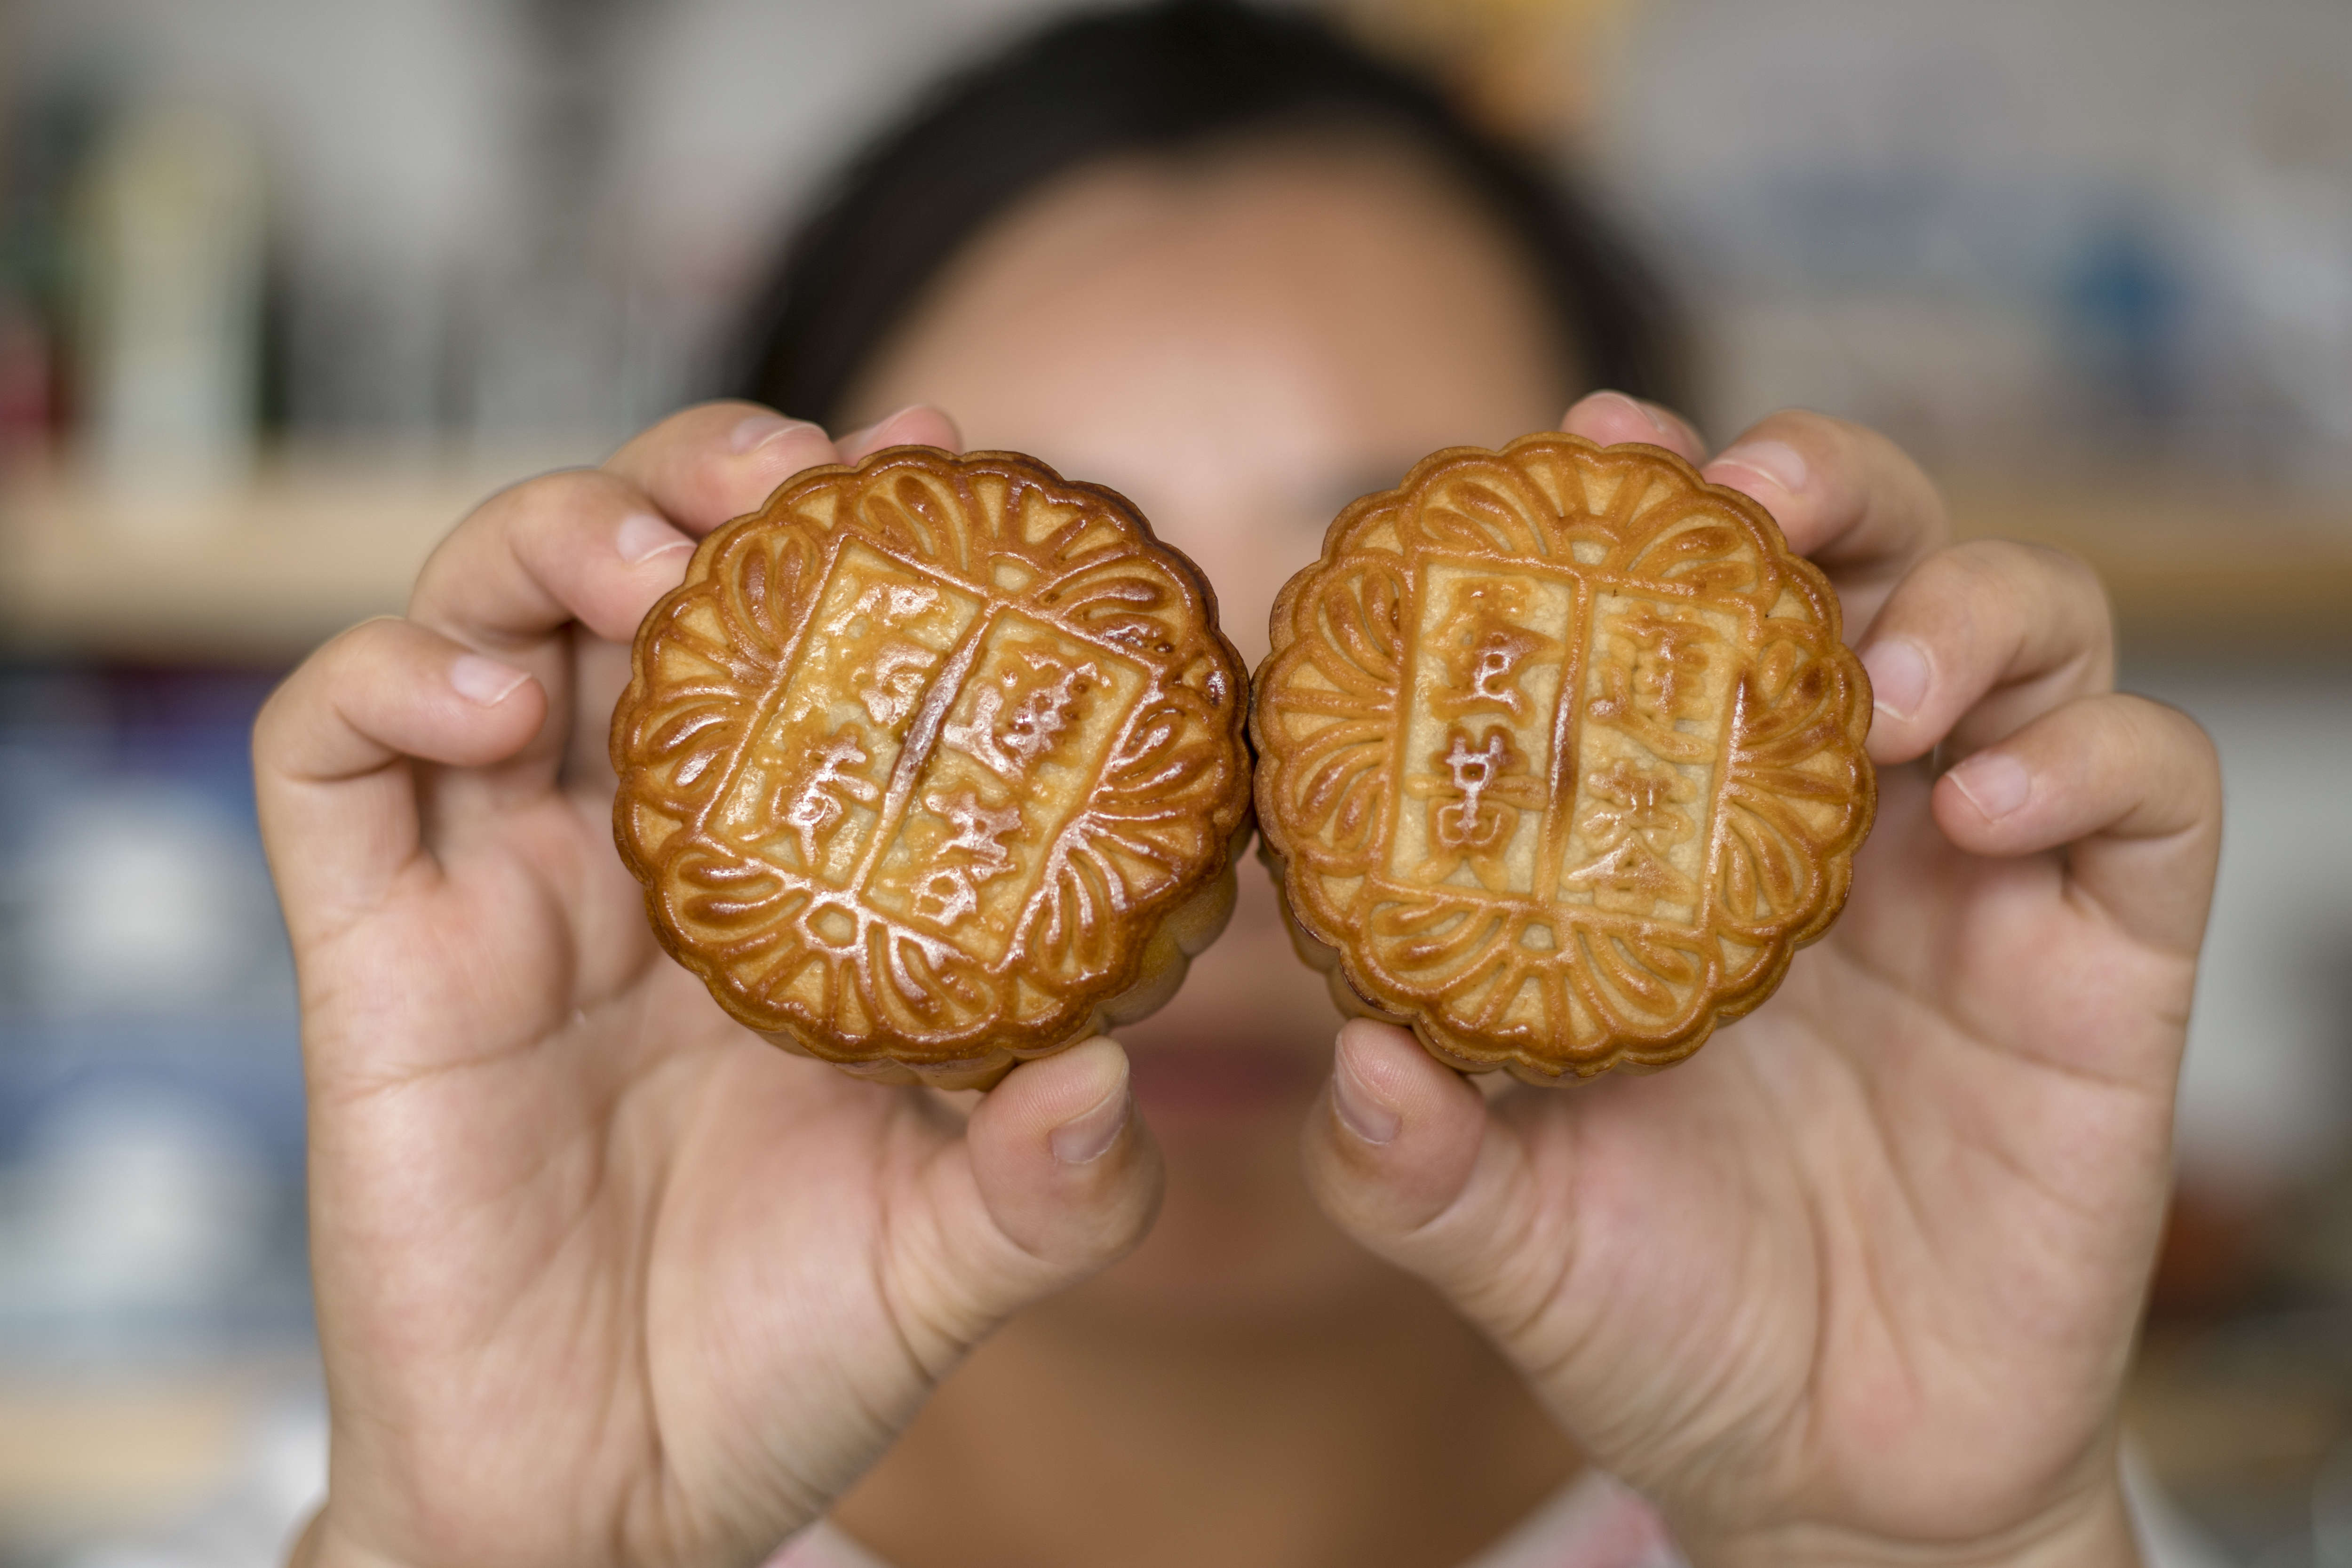 A woman in Beijing is holding moon cakes in her hands on Sept. 10, 2016